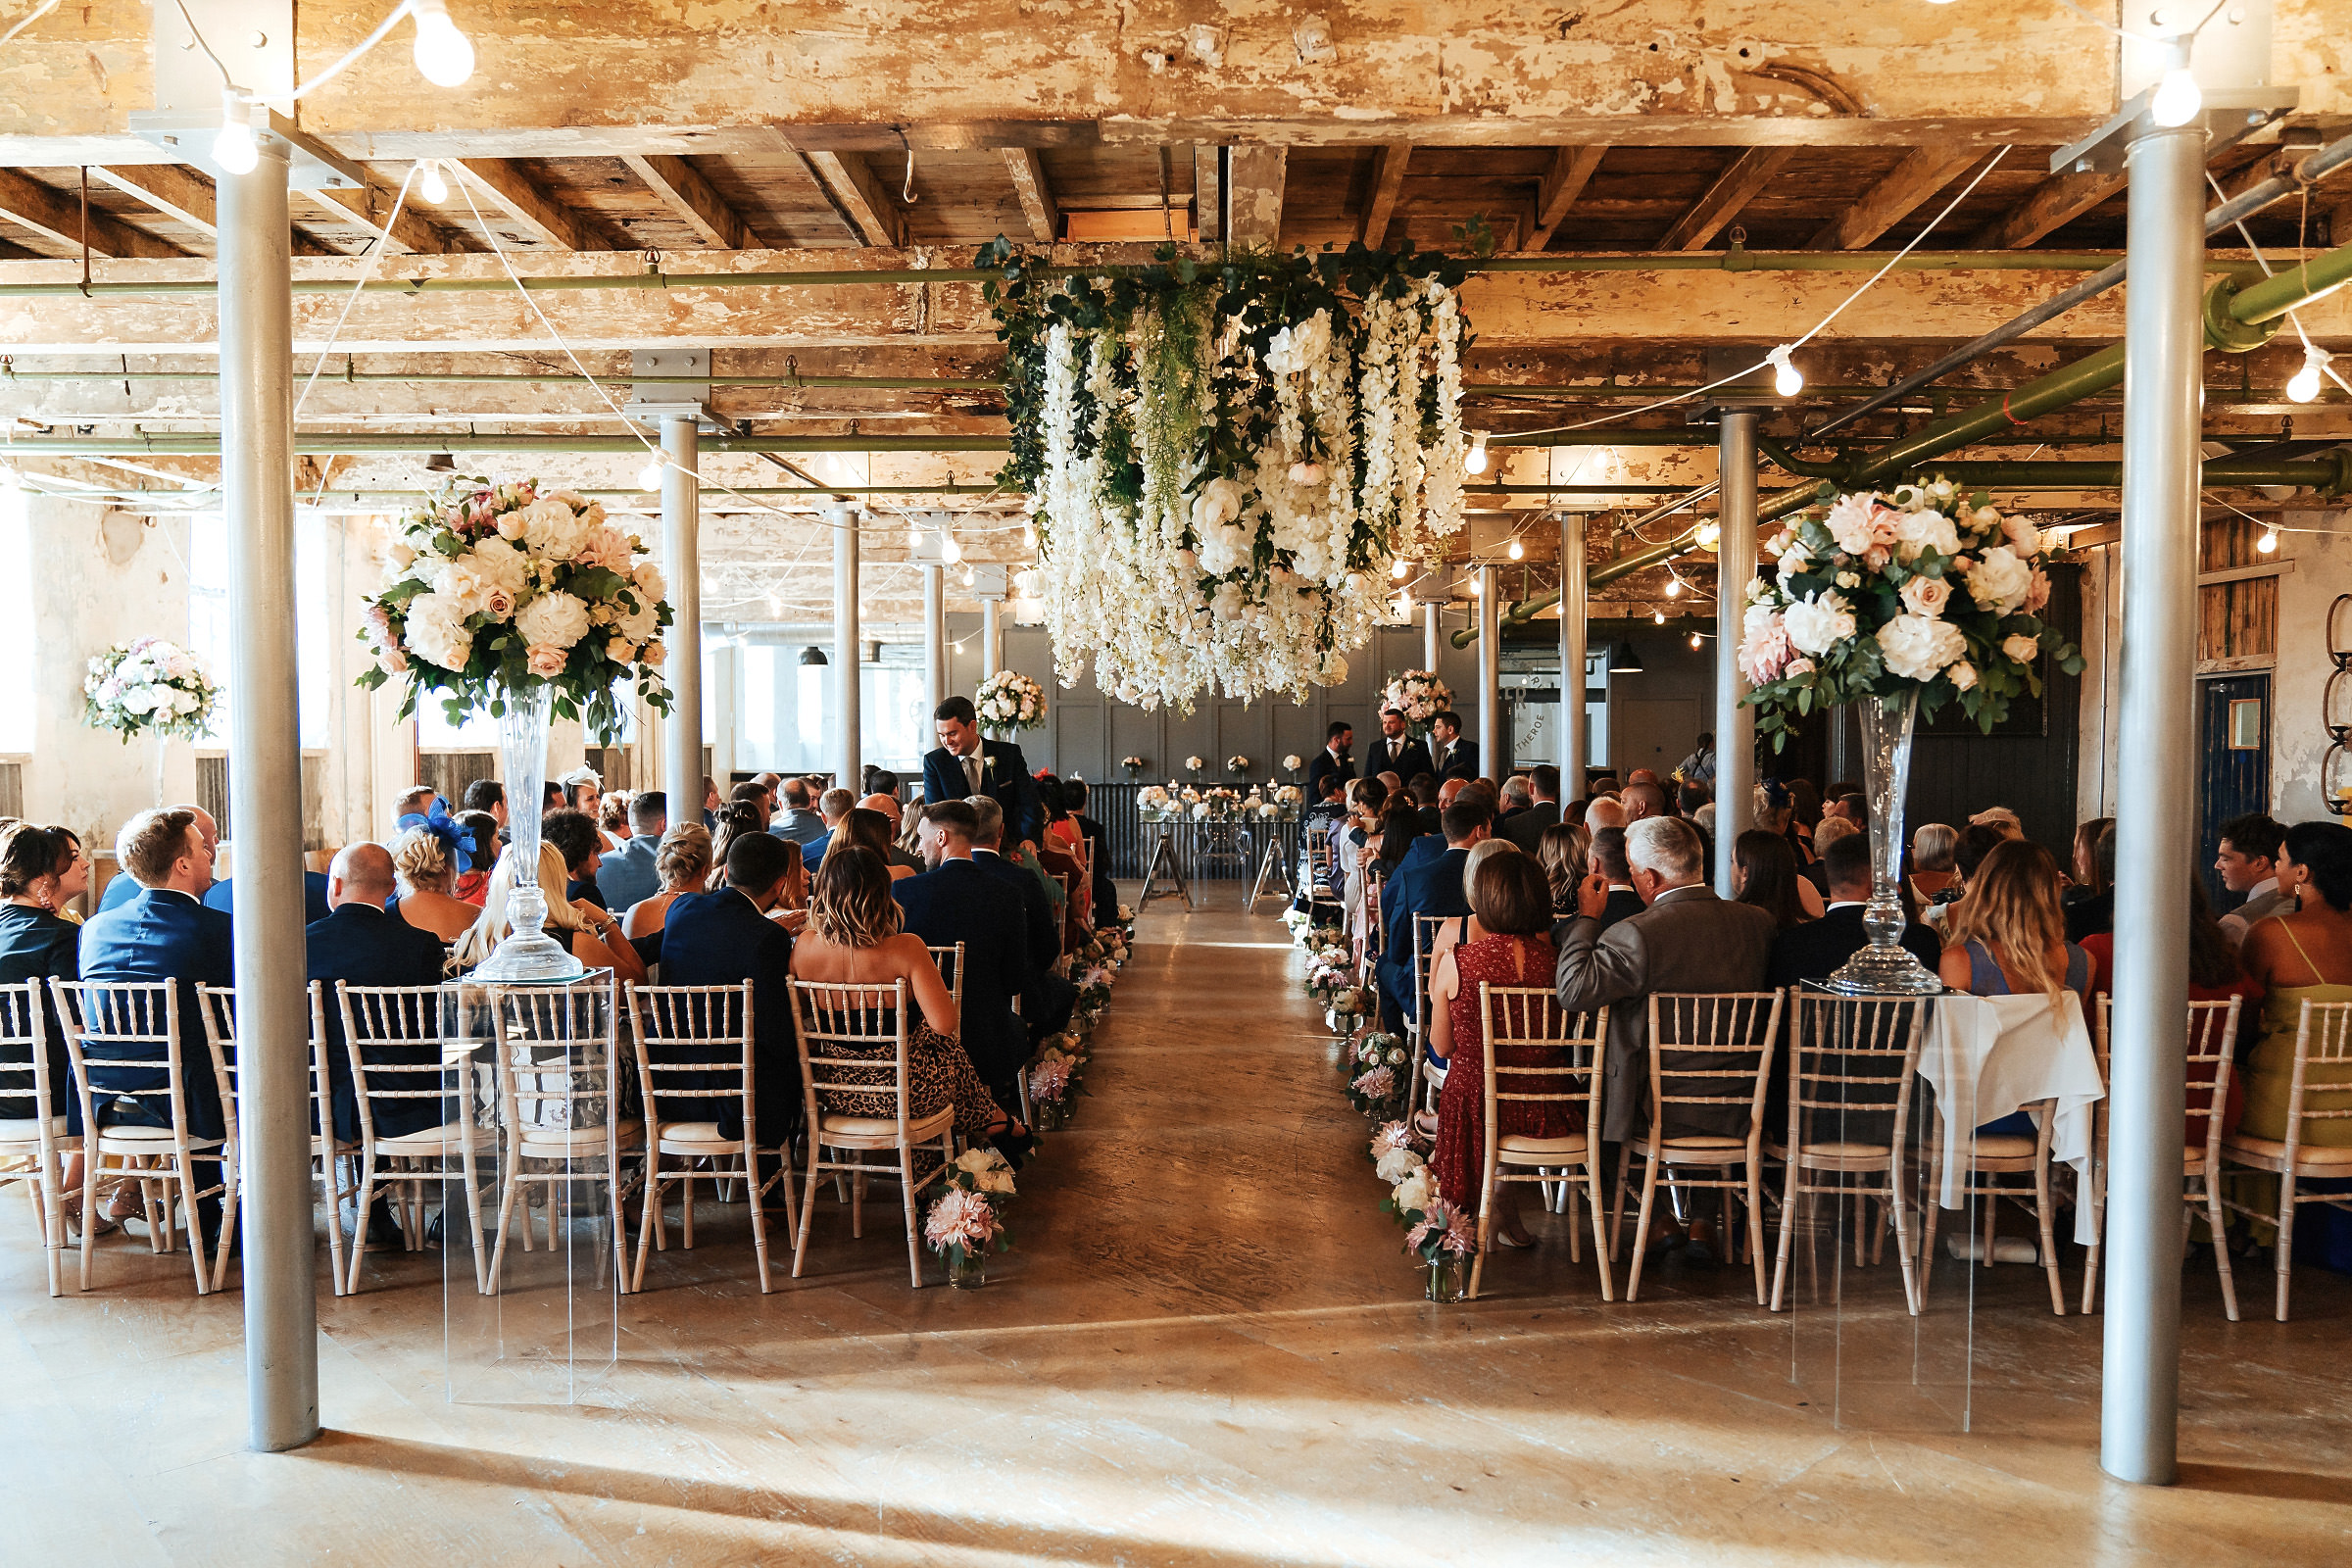 Holmes Mill function room with wedding guests